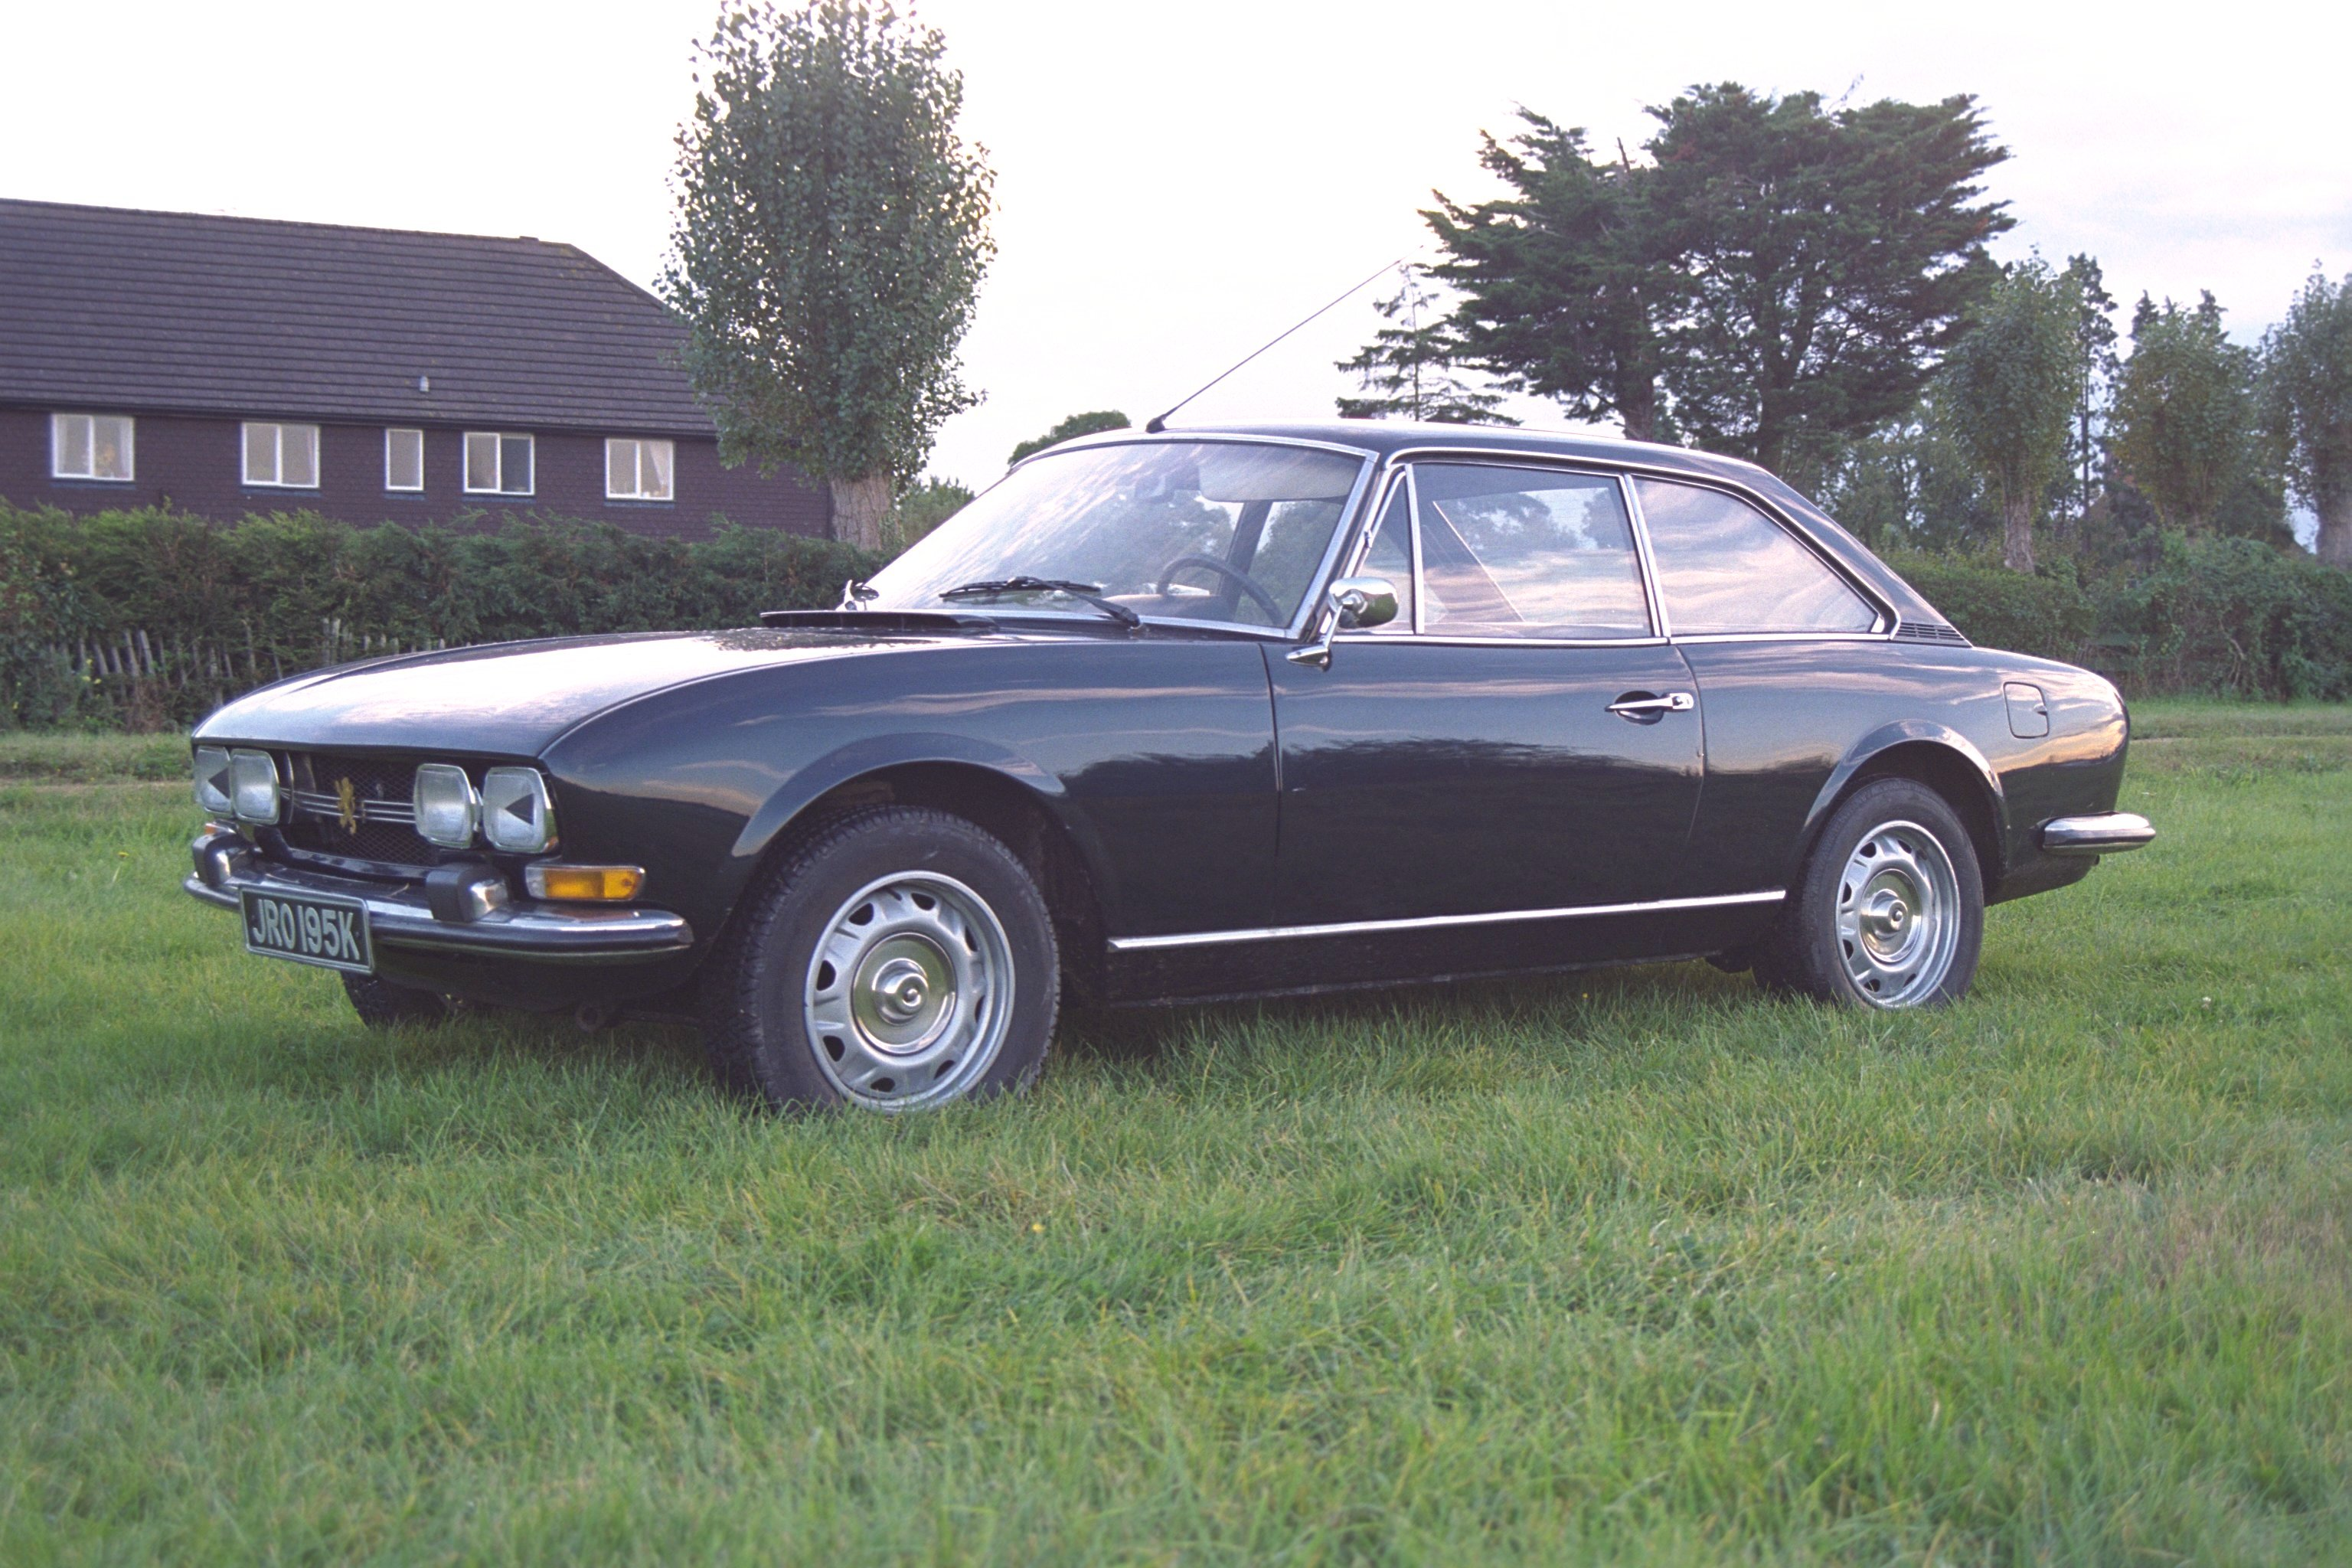 peugeot 504 coupe 1972 flickr photo sharing. Black Bedroom Furniture Sets. Home Design Ideas